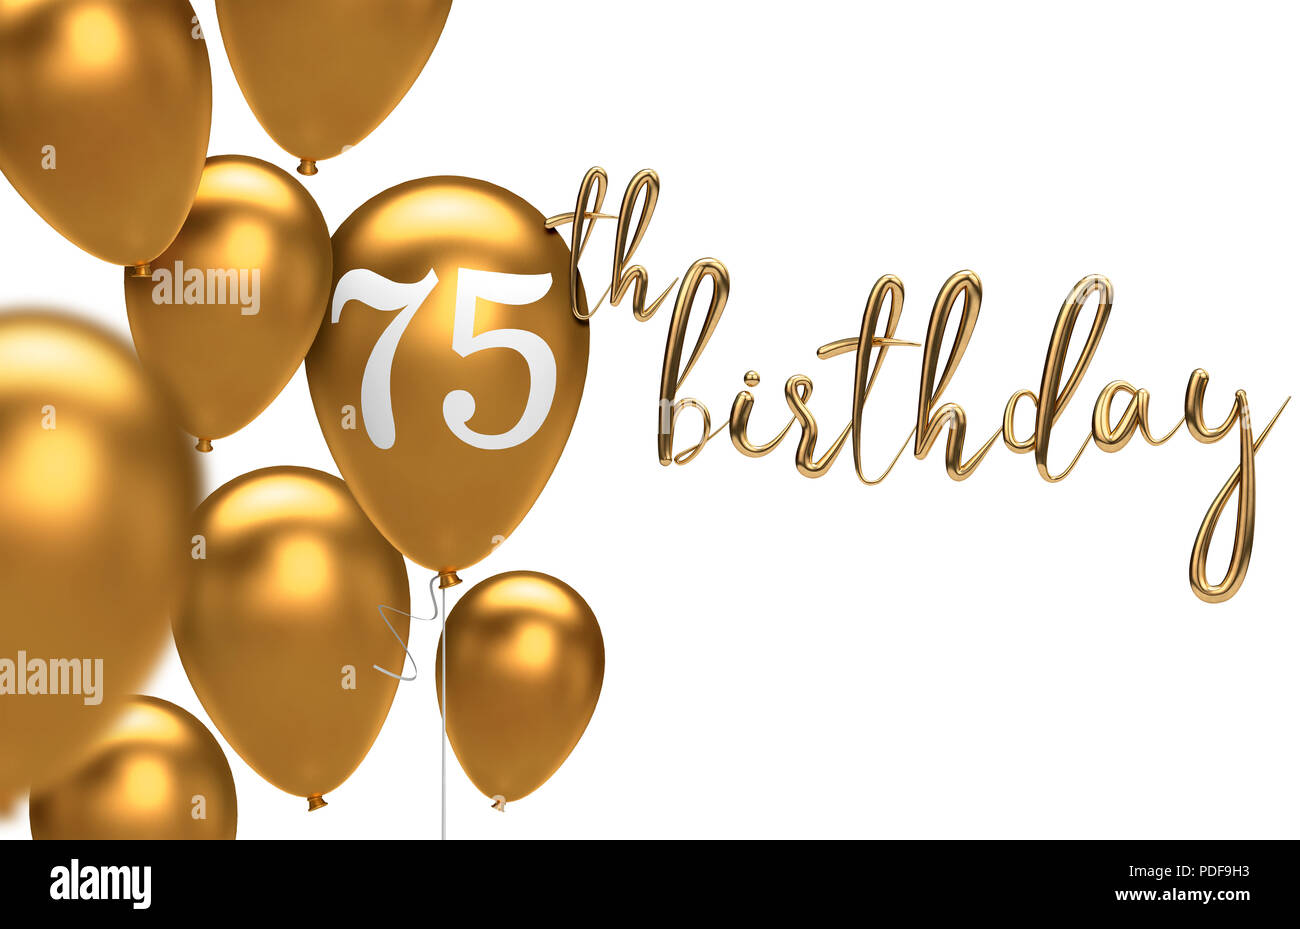 3d Candle Live Wallpaper Gold Happy 75th Birthday Balloon Greeting Background 3d